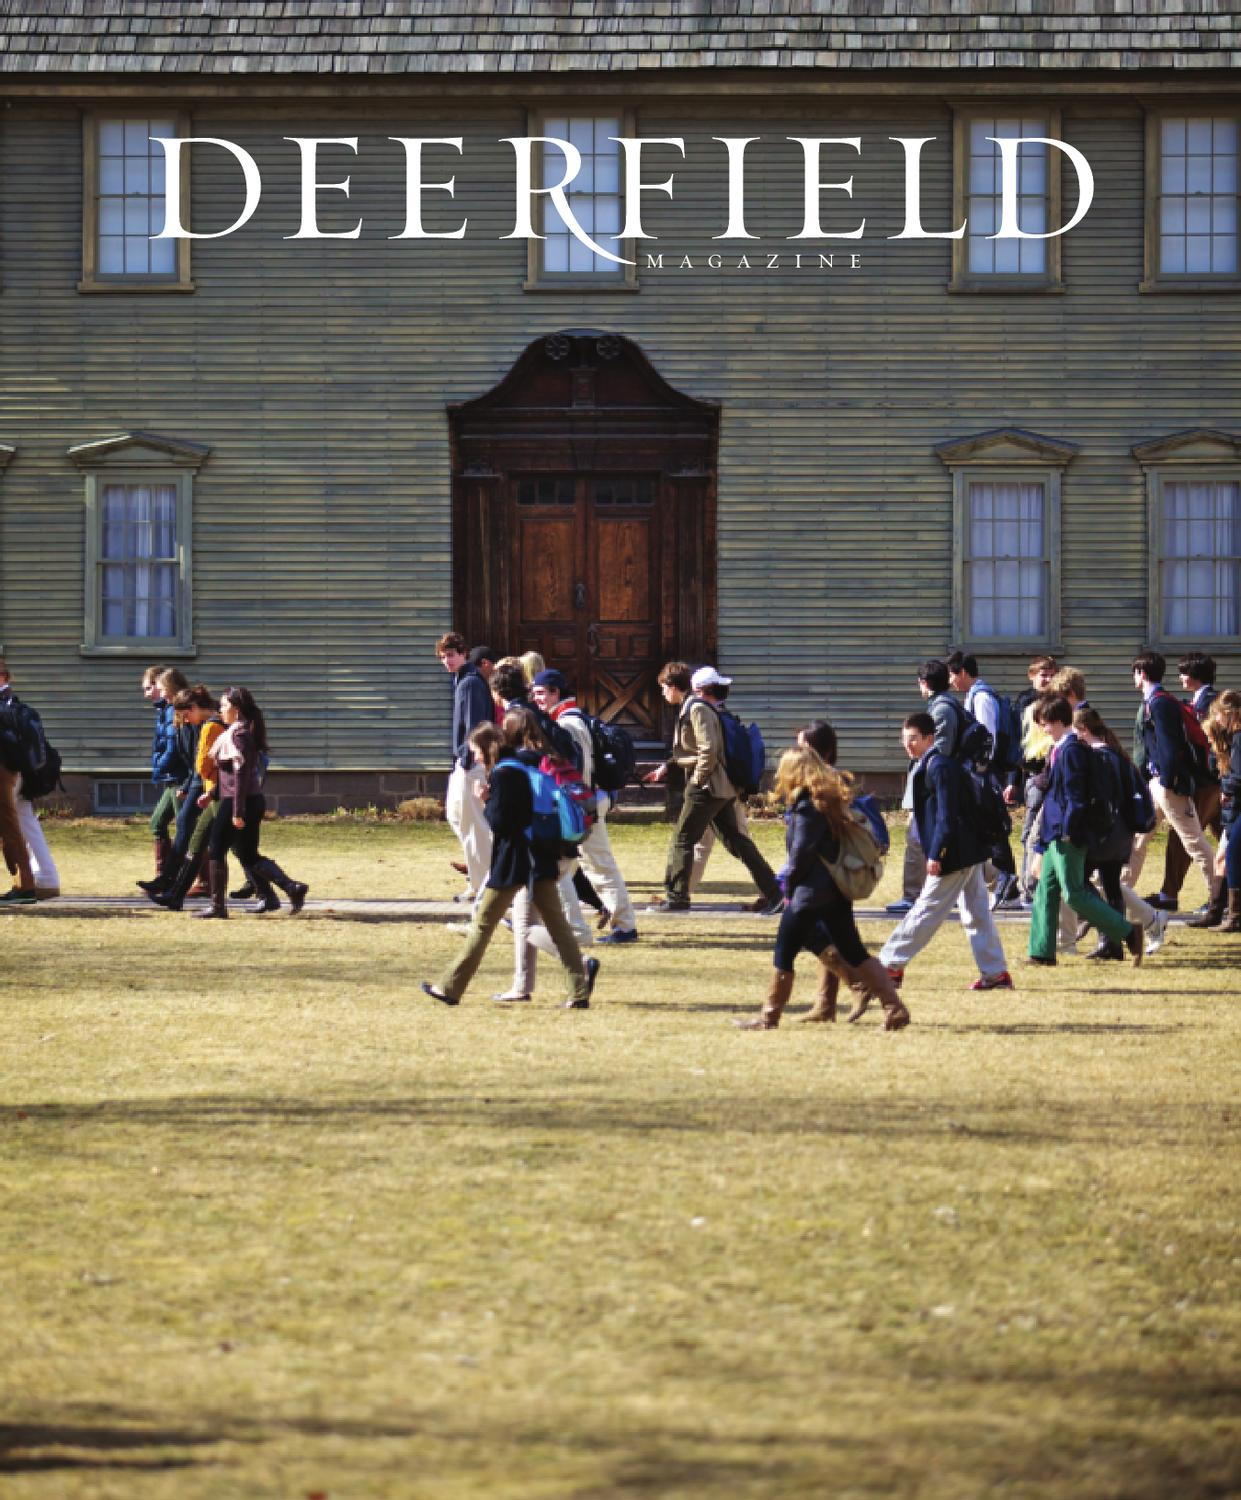 cdc282186b462 Fall 2012 Deerfield Magazine by Deerfield Academy - issuu